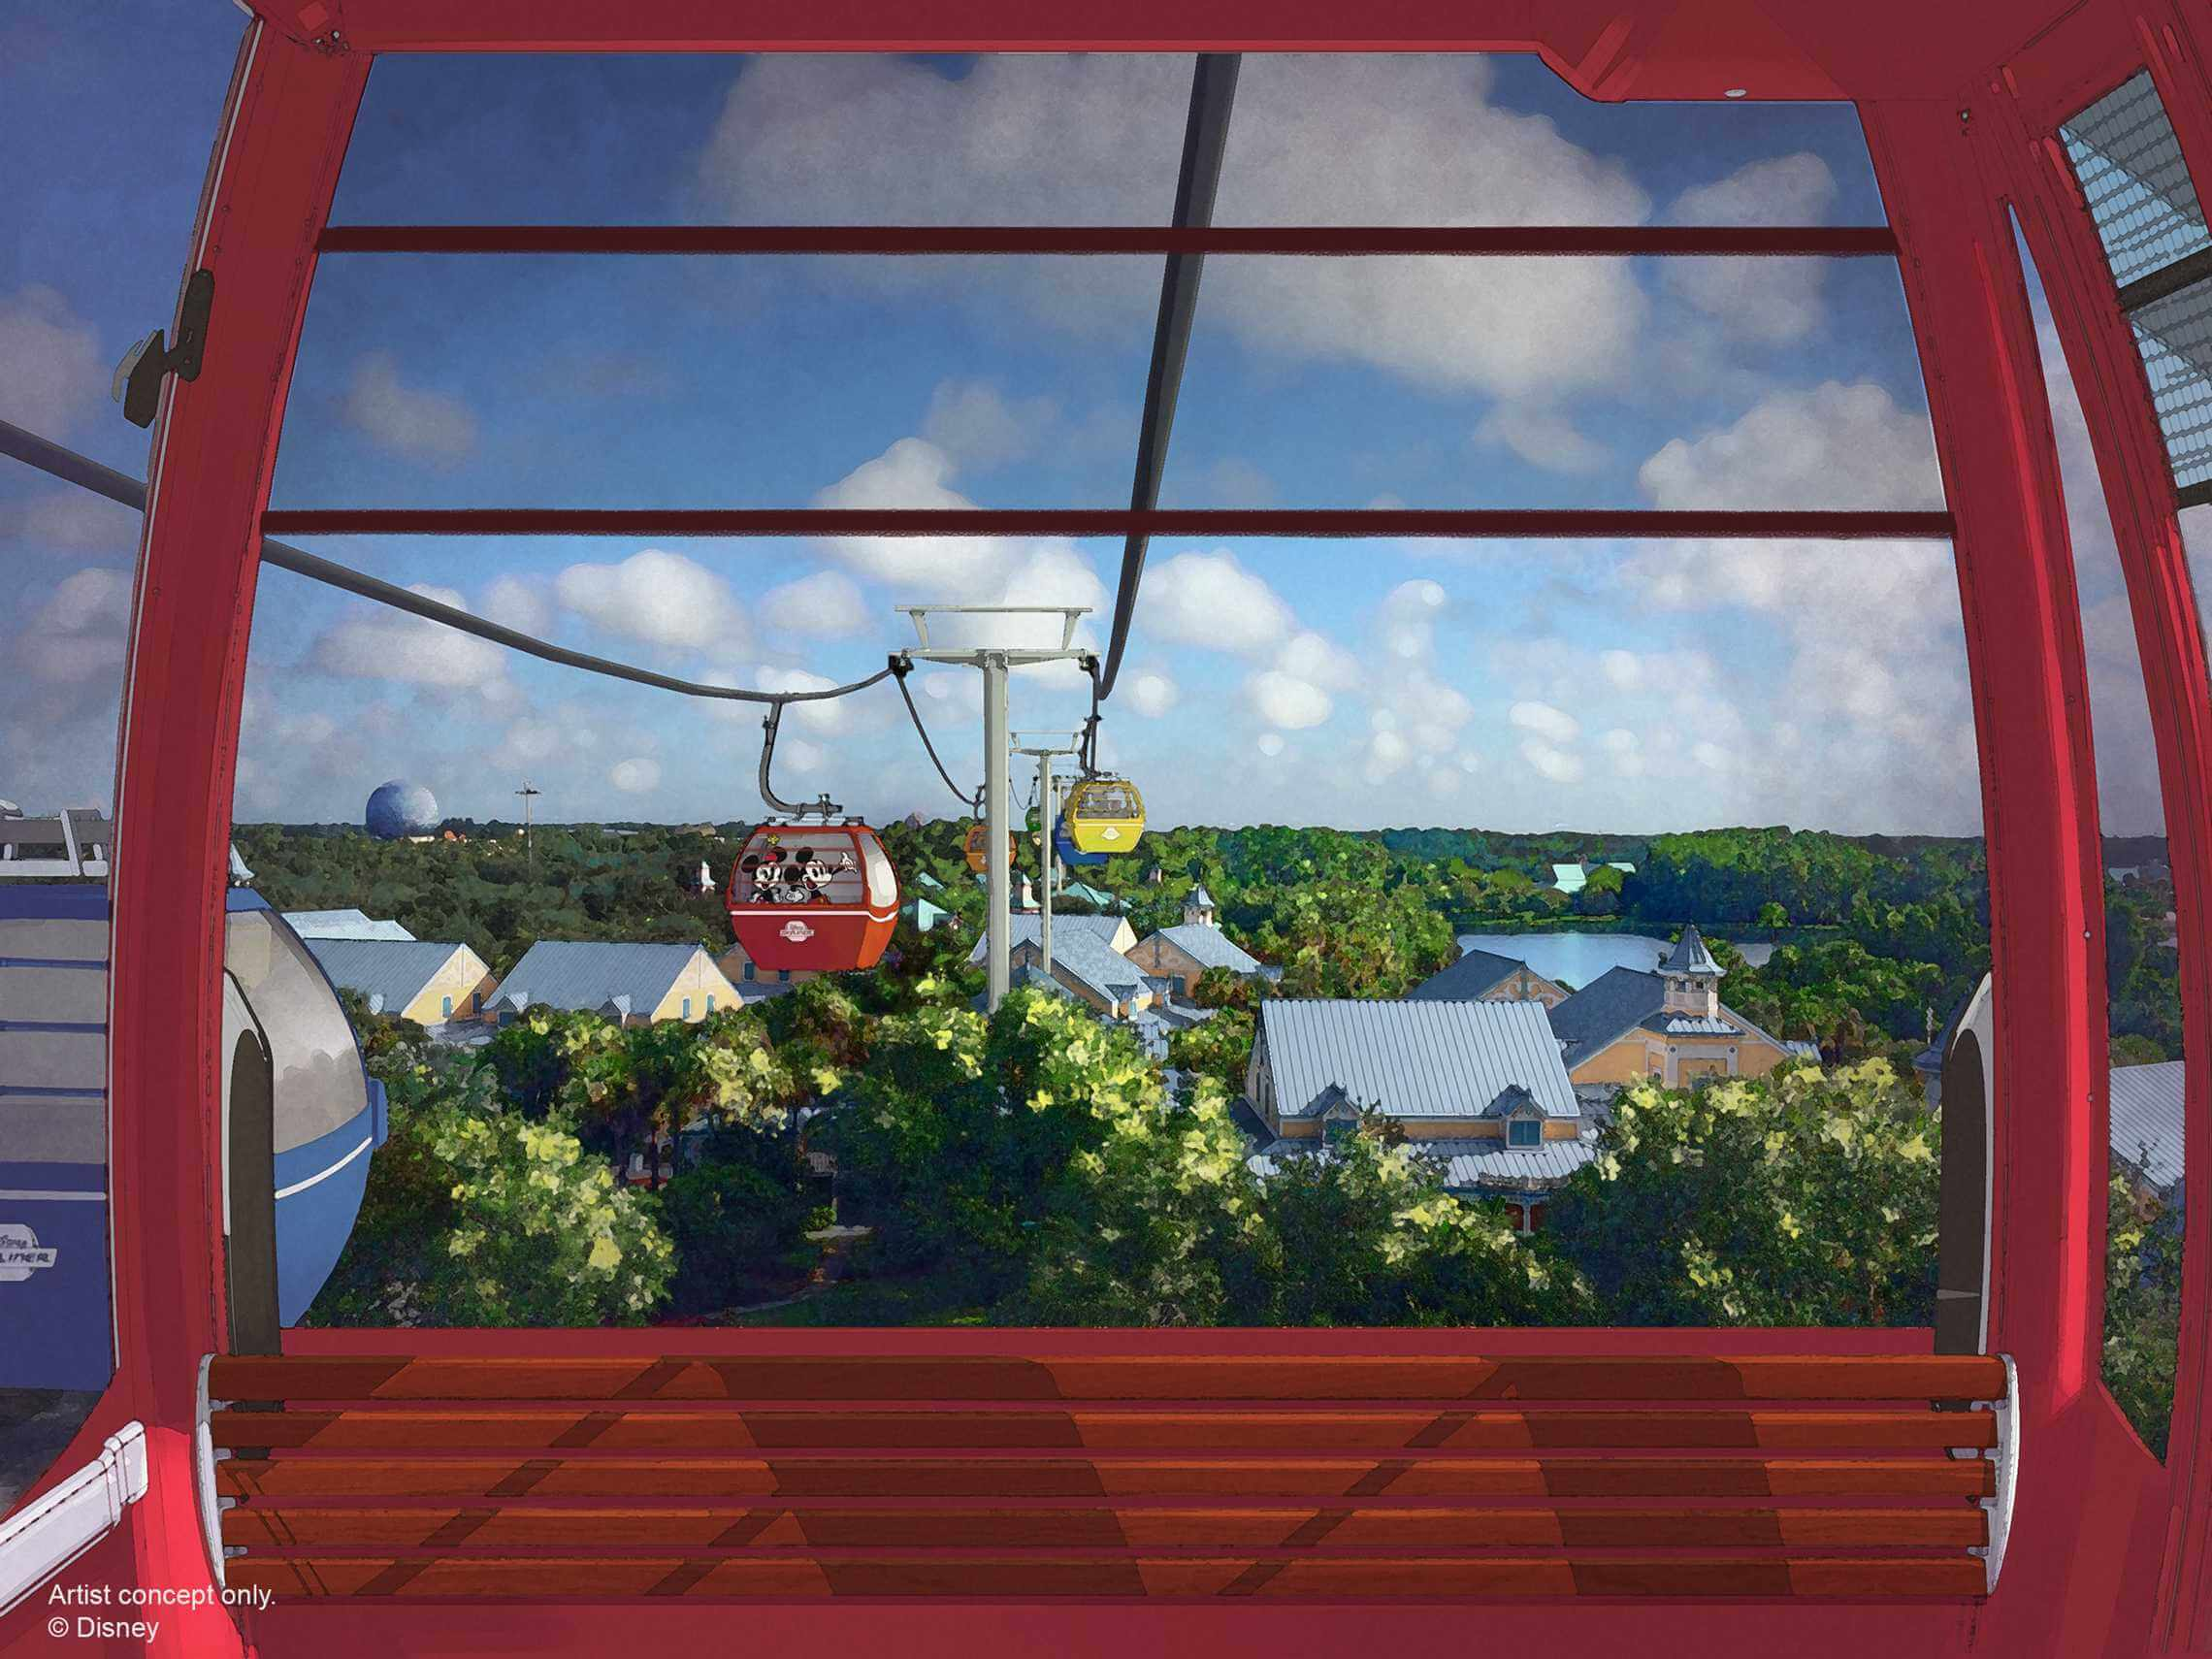 Disney World Gondola Transportation System Confirmed